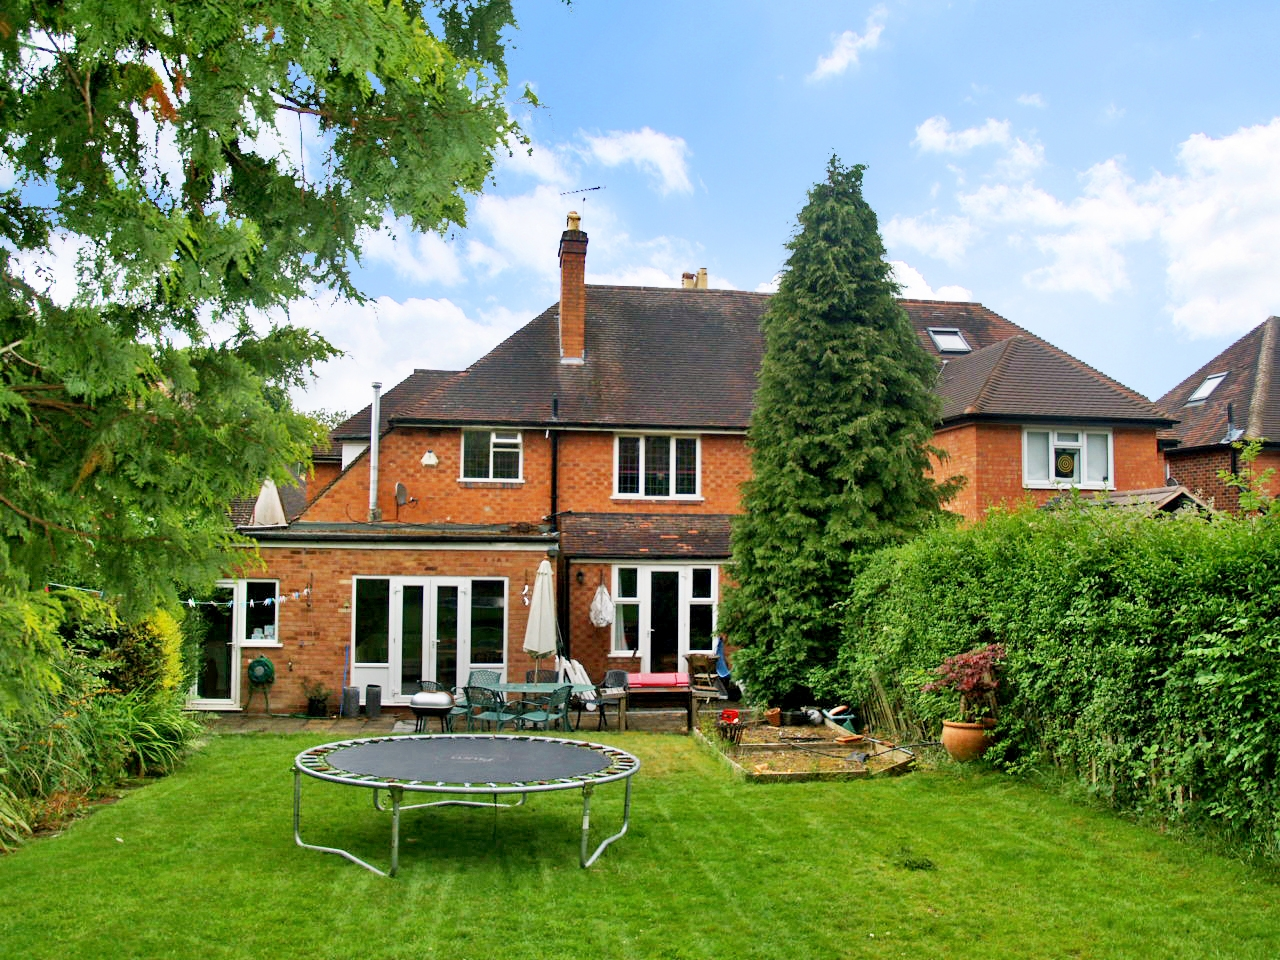 4 bedroom semi detached house SSTC in Solihull - photograph 4.